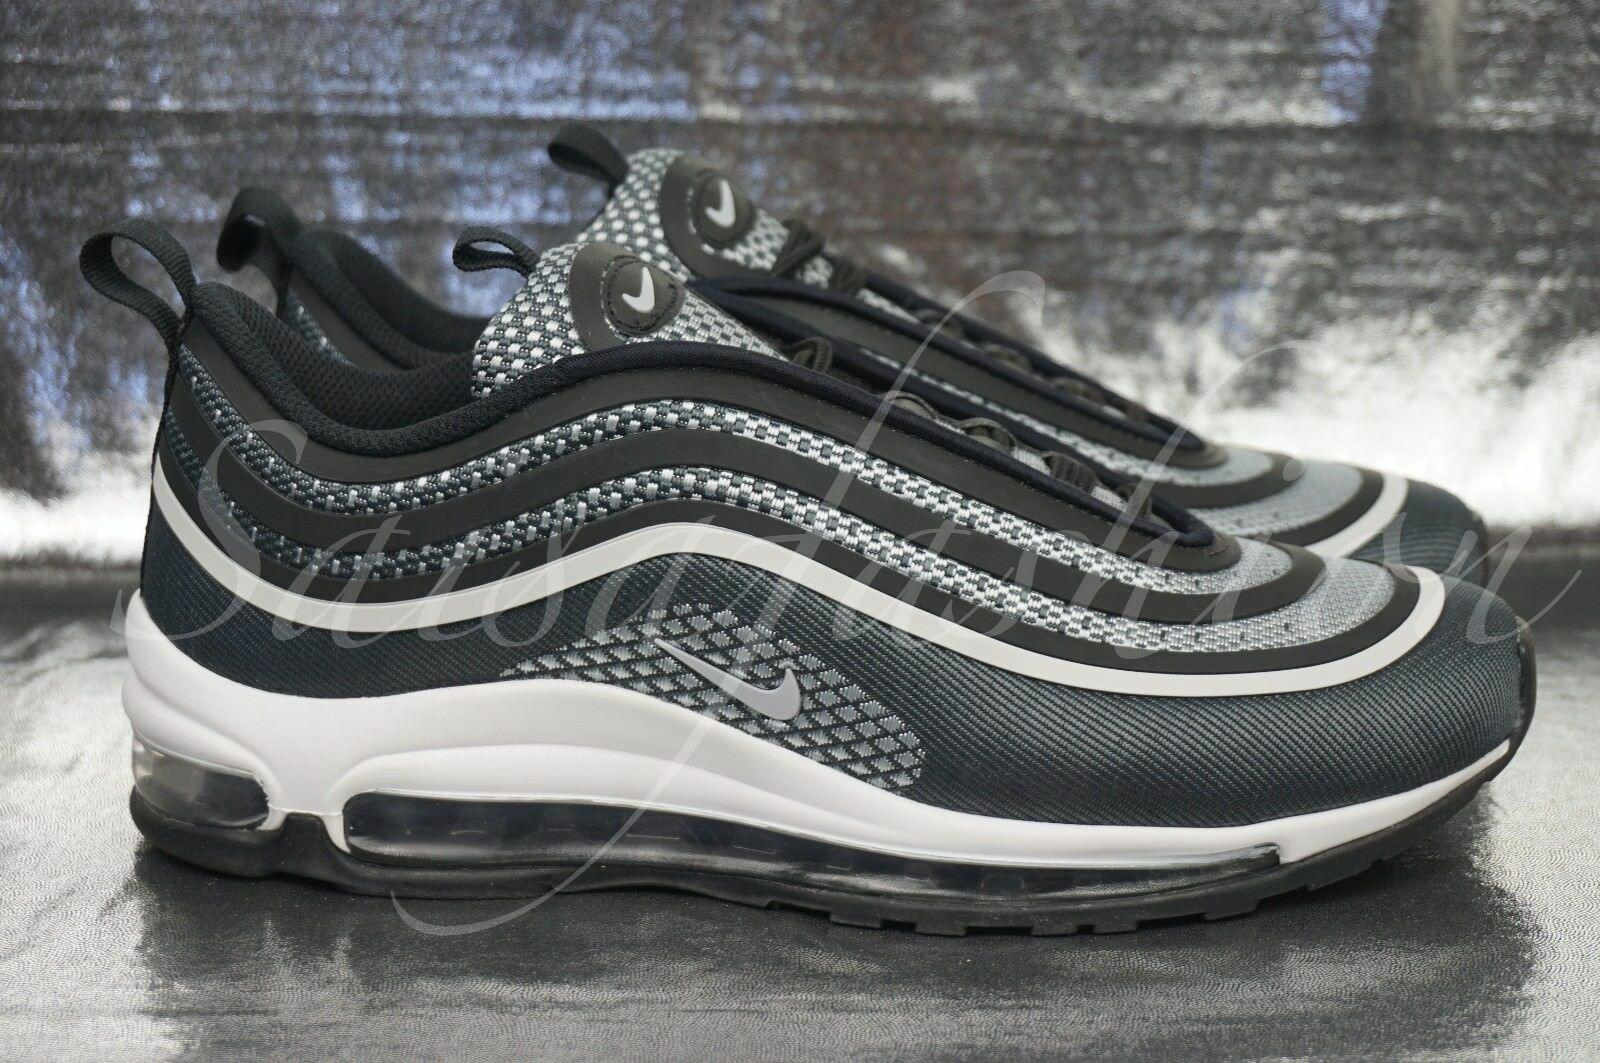 Nike Air Max 97 Ultra '17 (GS) Grade School (Big Kids) Shoes 917998 001 Sz 7Y